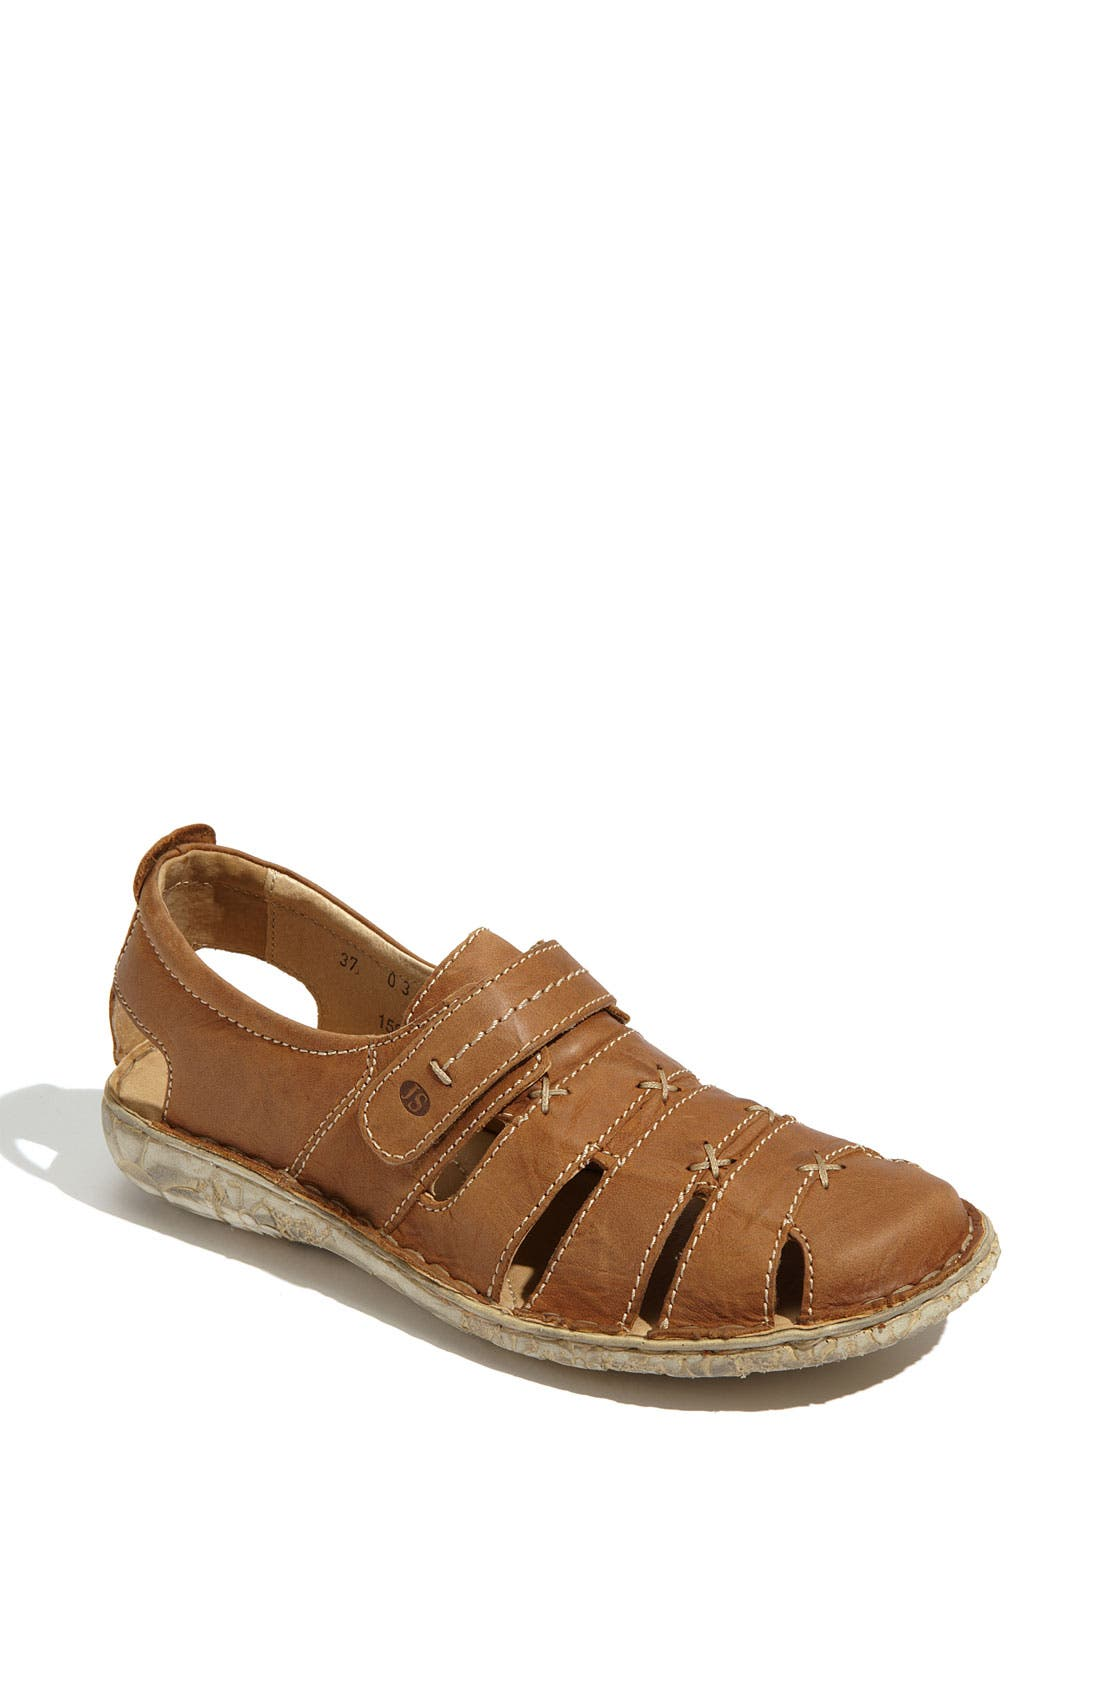 Ida Sandal,                         Main,                         color, BARK